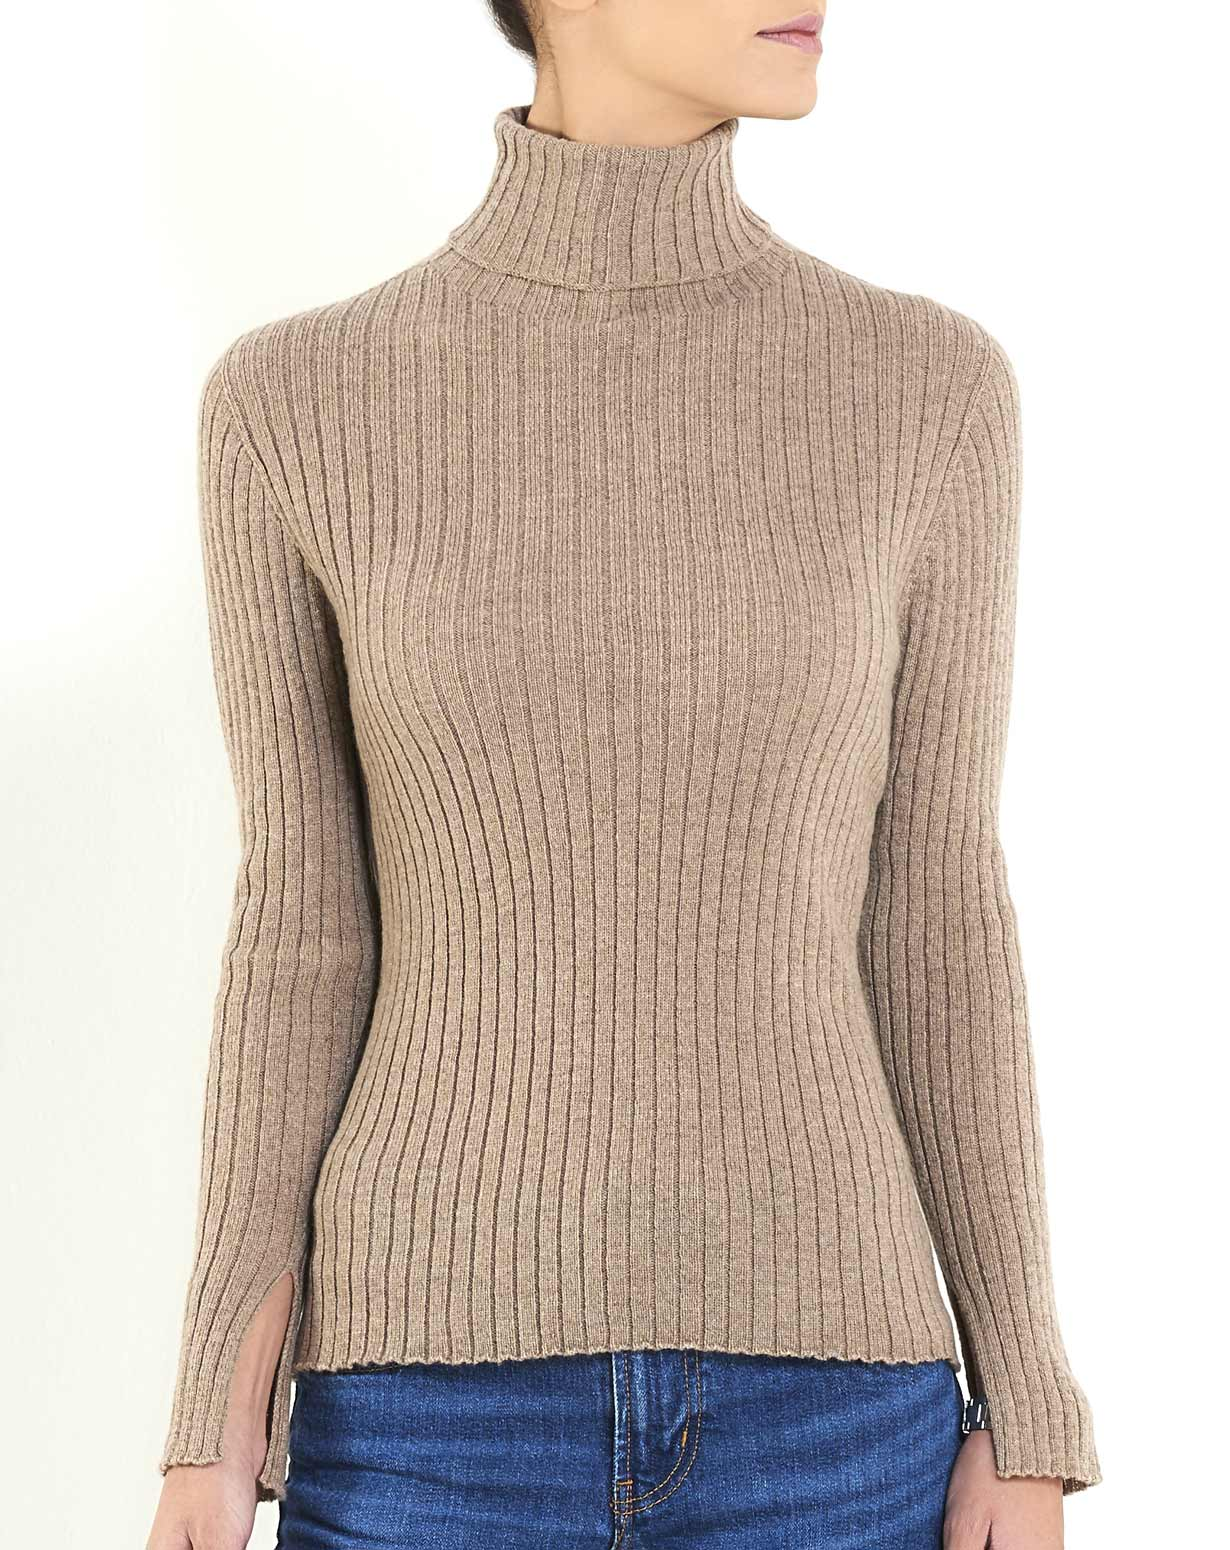 62533c85abcc Women s Cashmere Vertical Rib Turtleneck Sweater